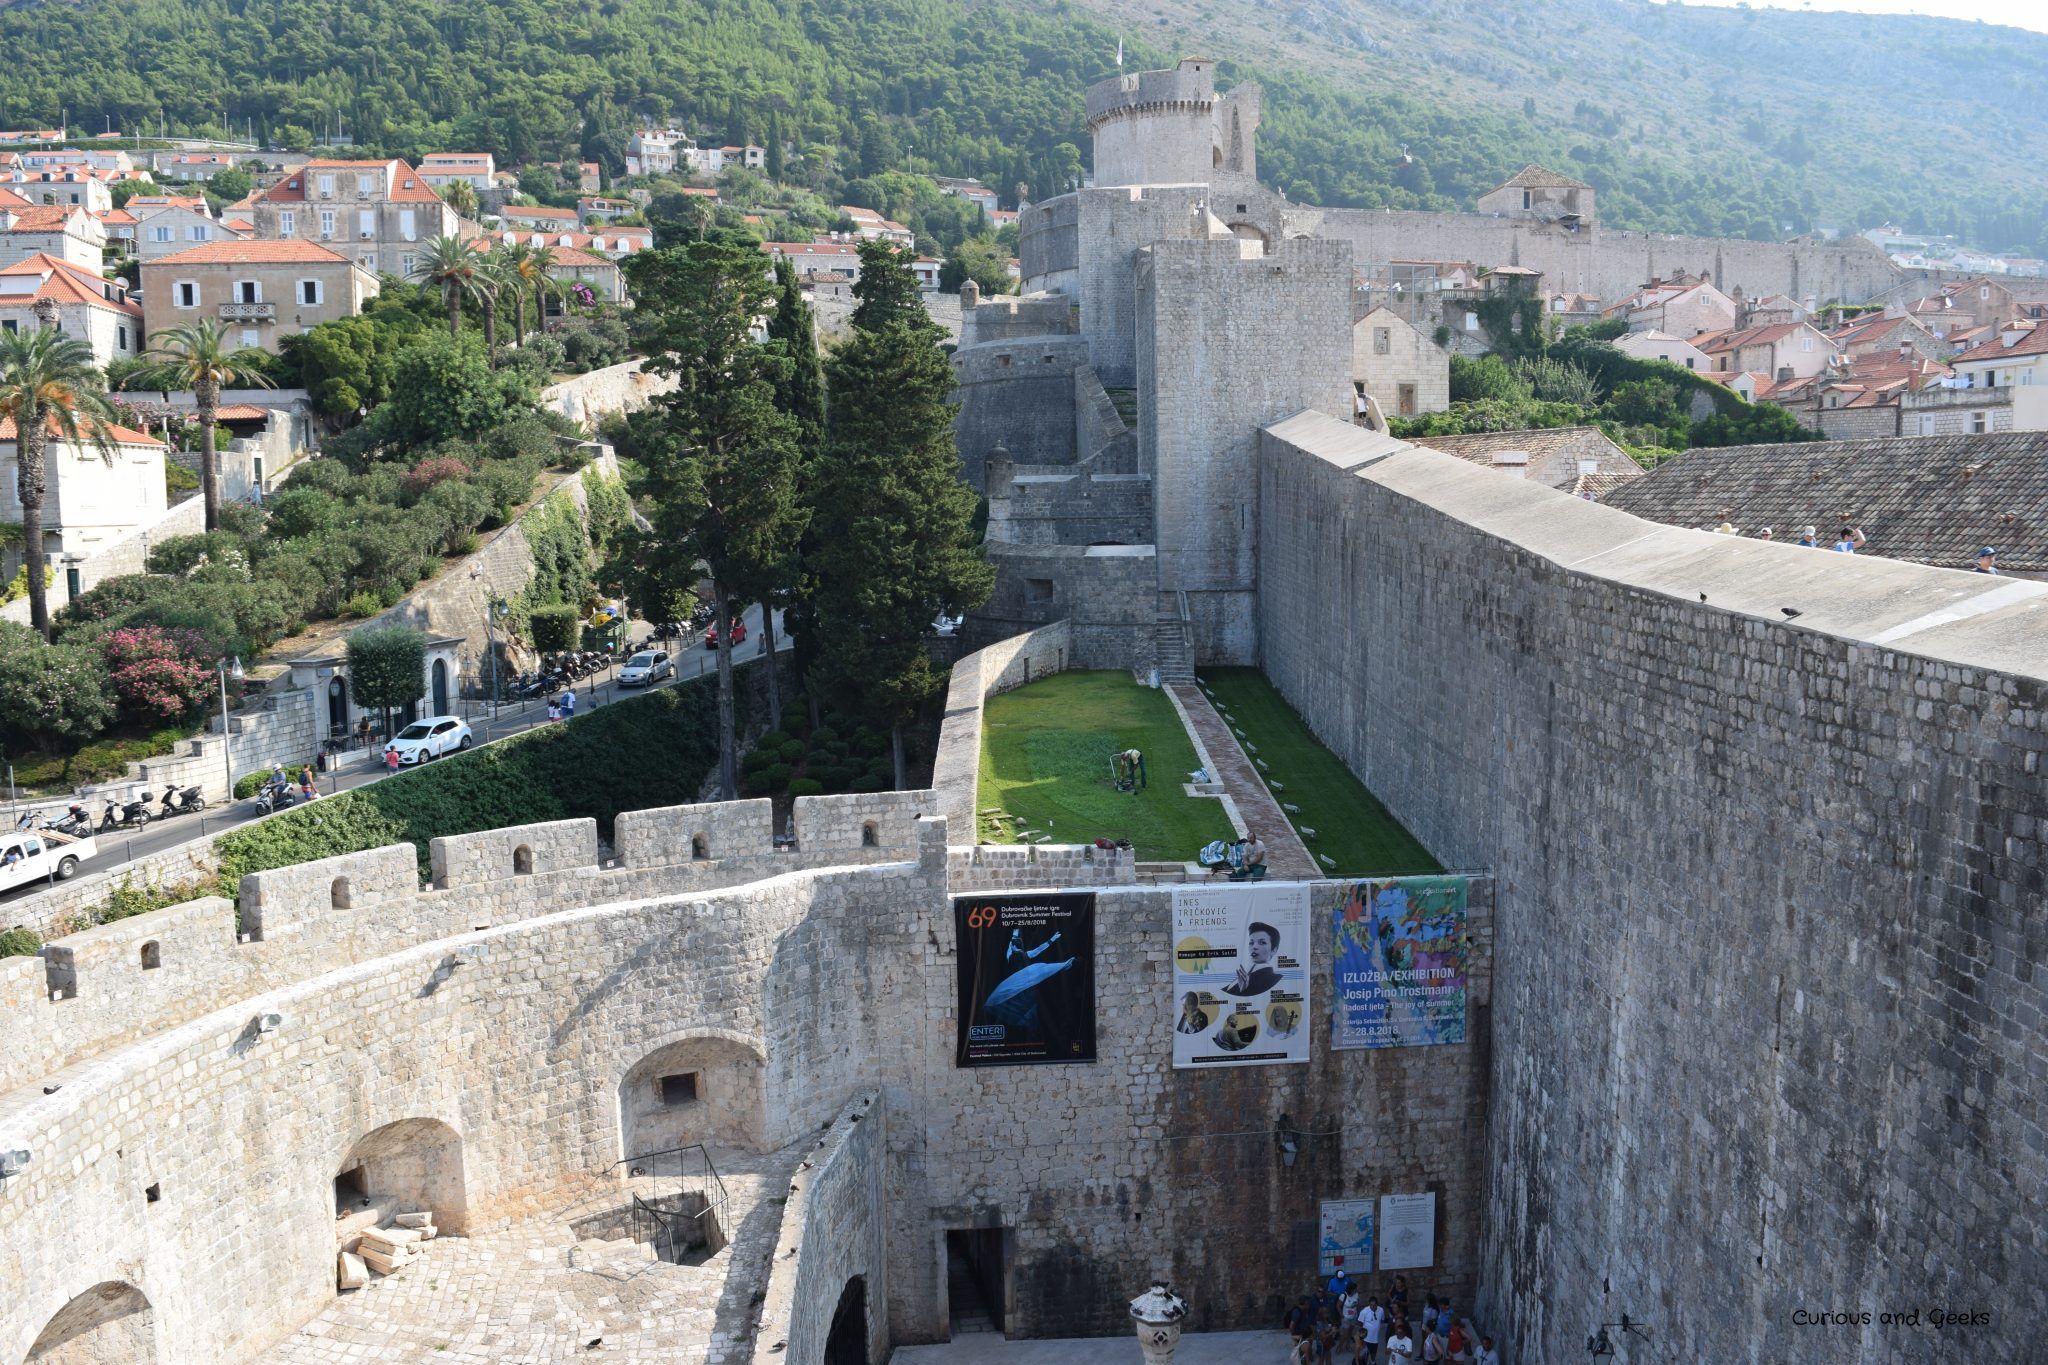 8. The practice field - Game of Thrones filming locations in Dubrovnik